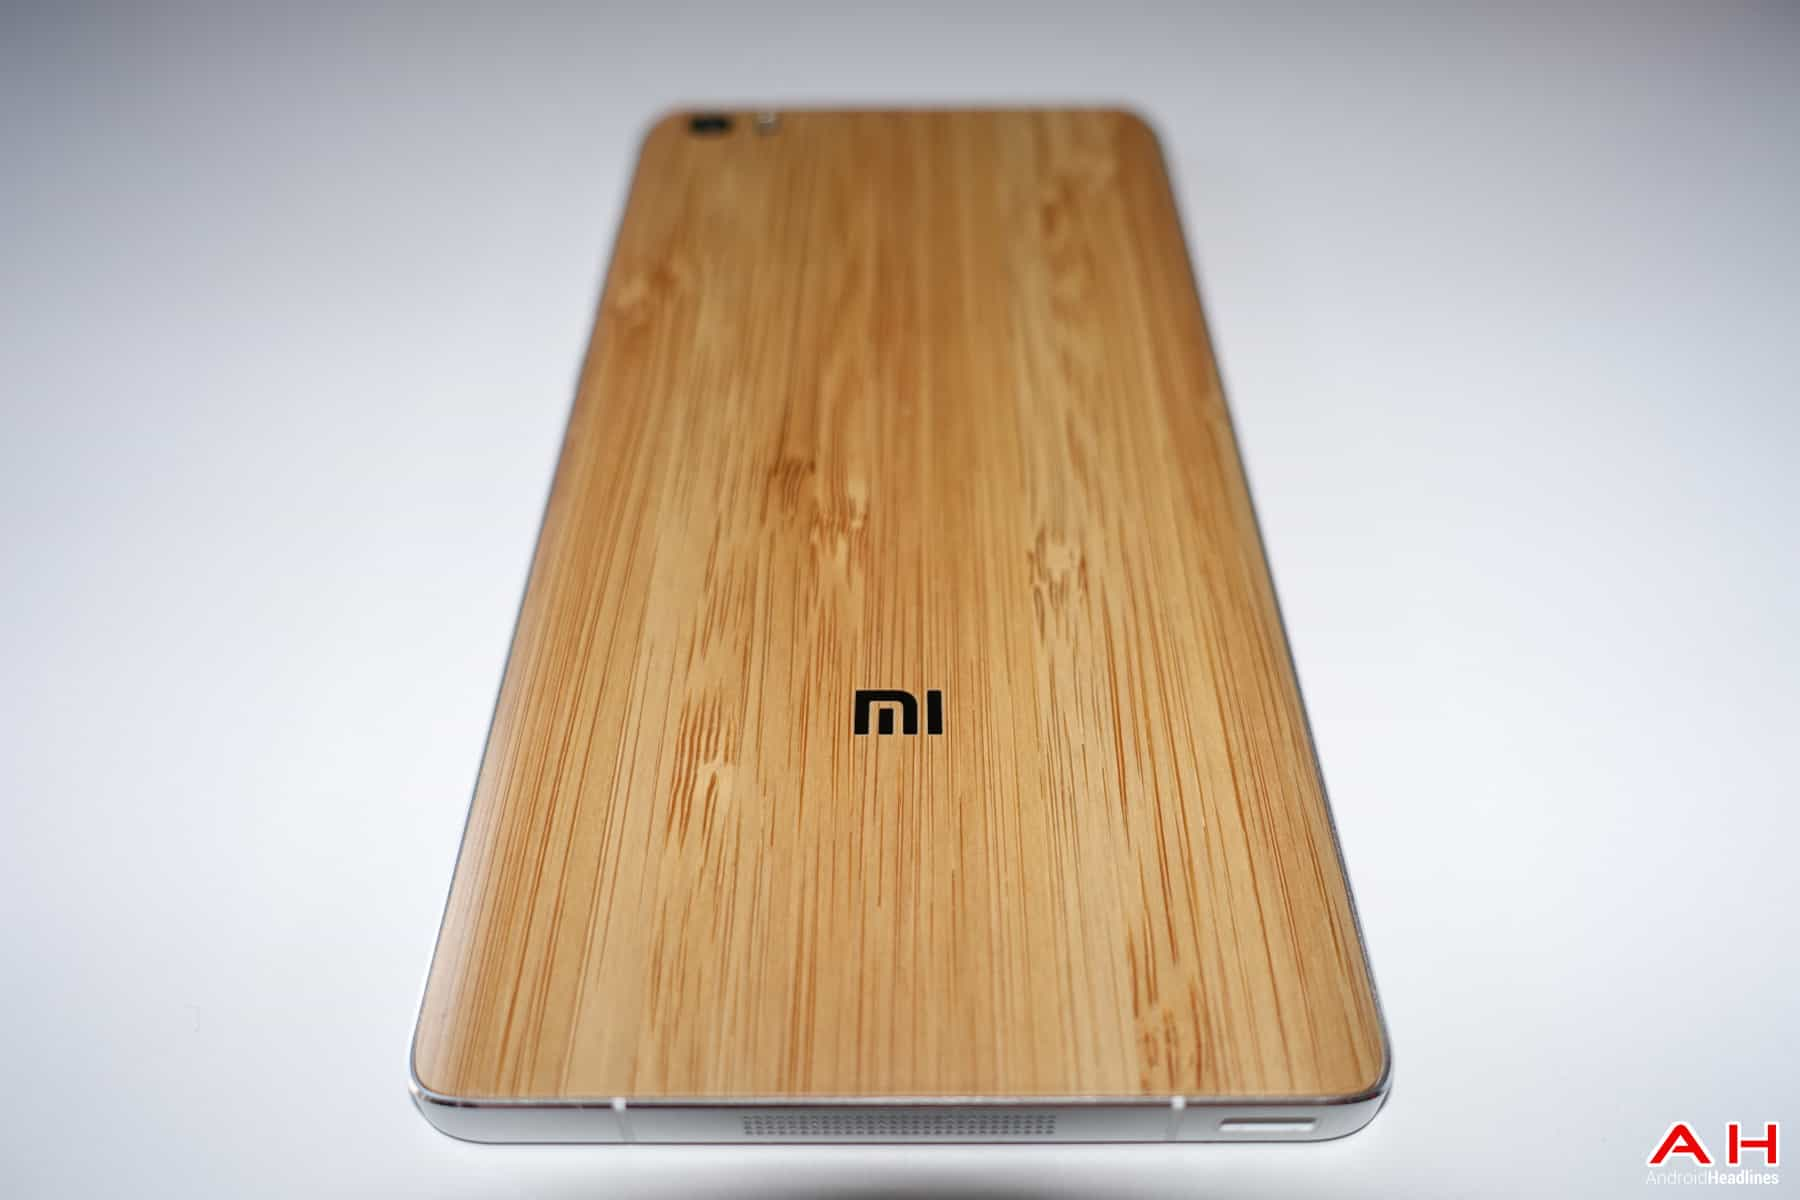 AH Xiaomi Note Bamboo Logo June 30 Series 2-13